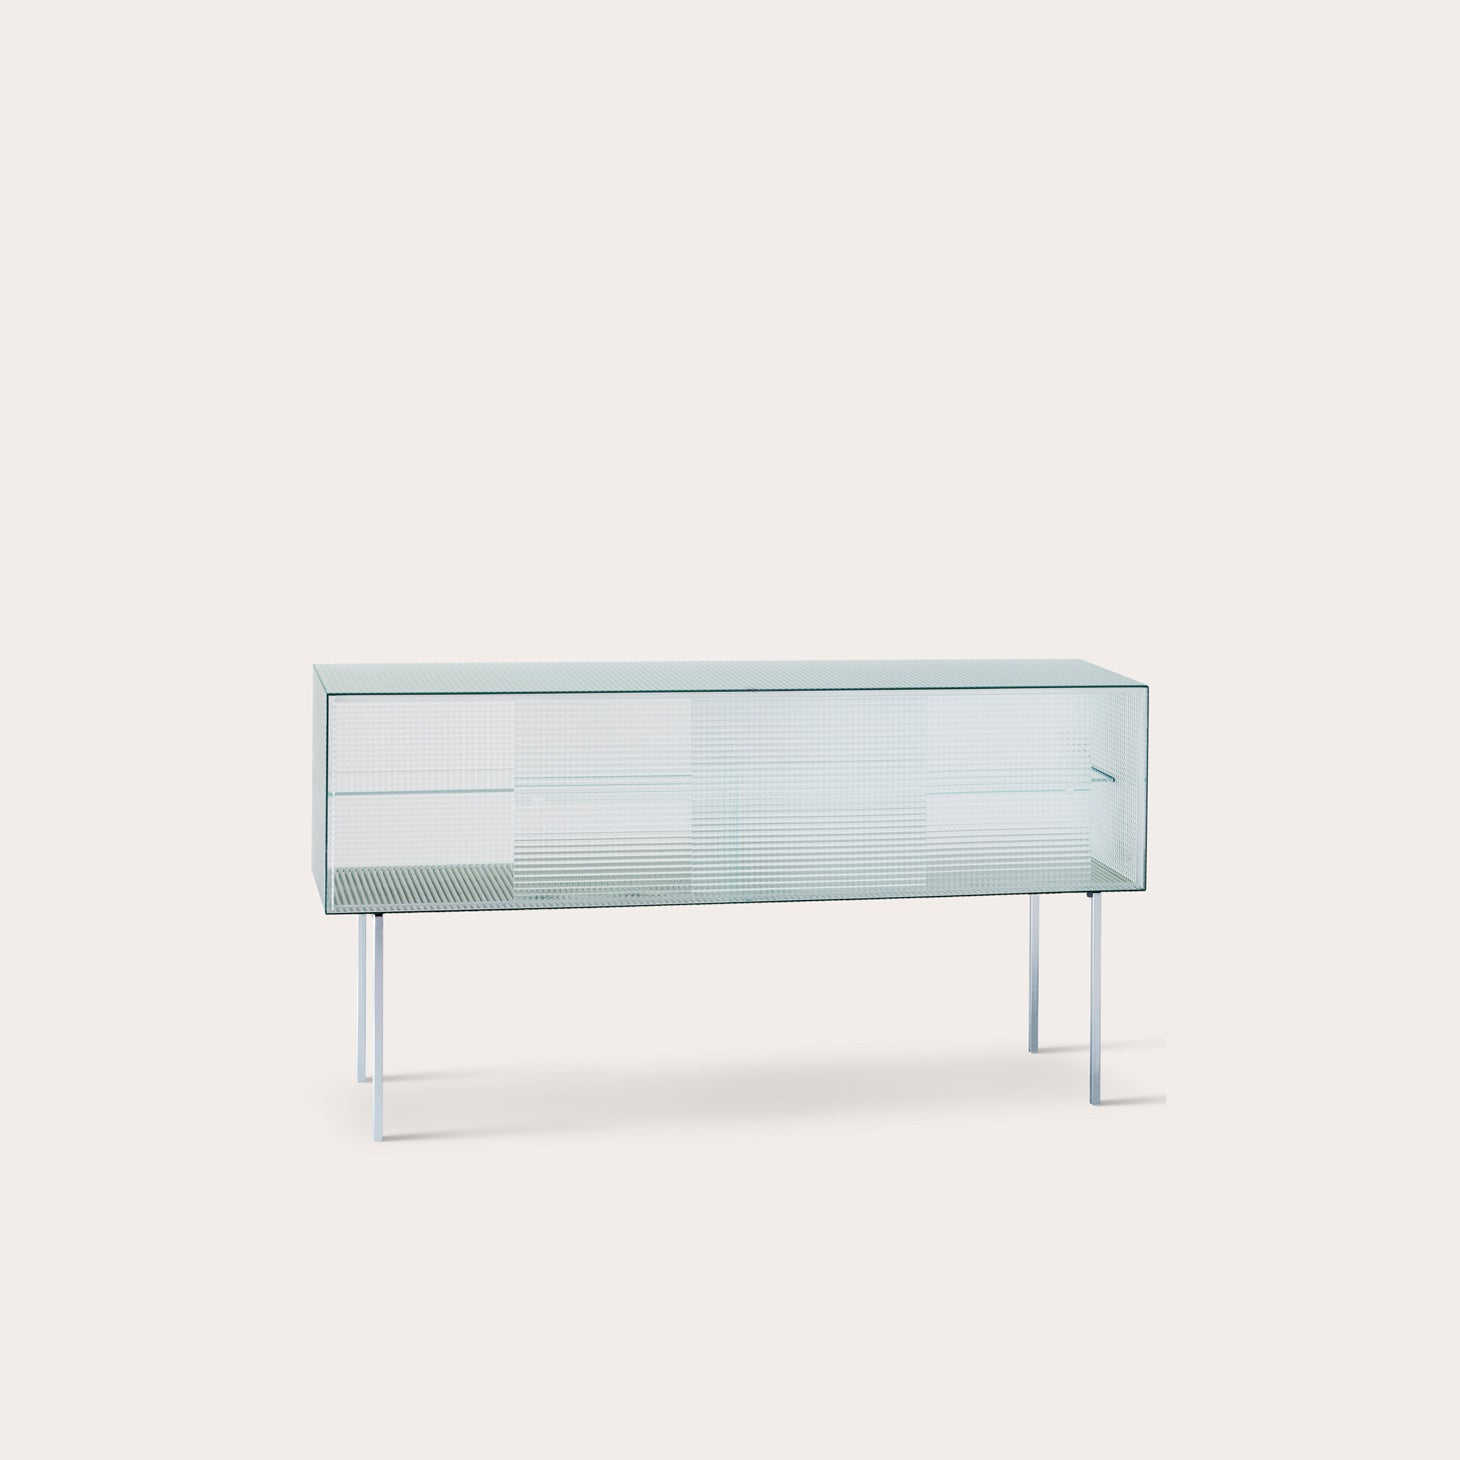 Commodore Sideboard Storage Piero Lissoni Designer Furniture Sku: 288-230-10245